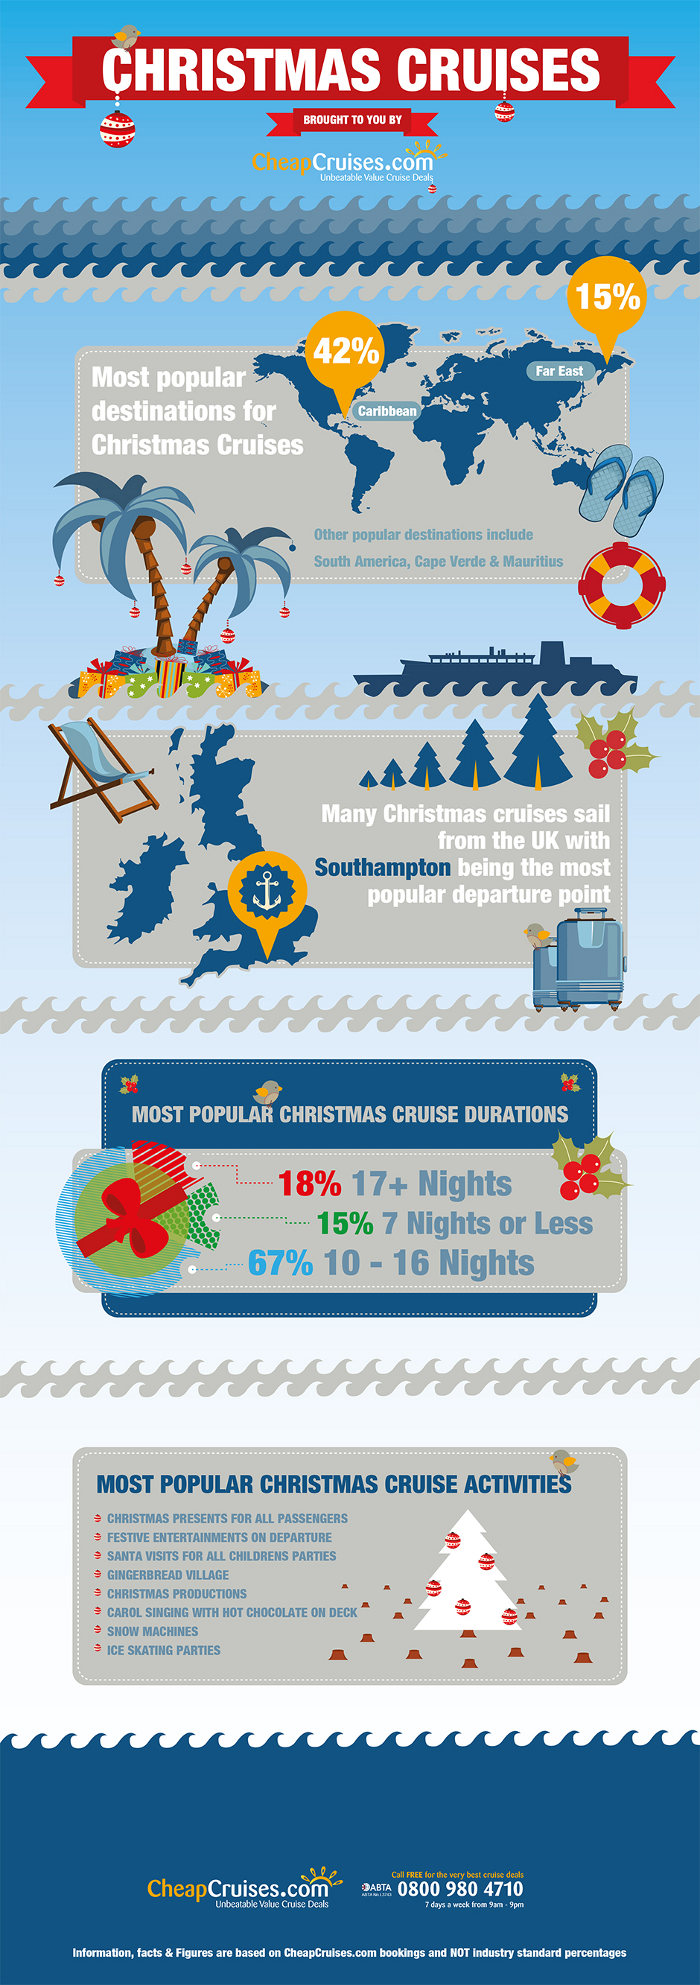 Cruise in Christmas-Infographic